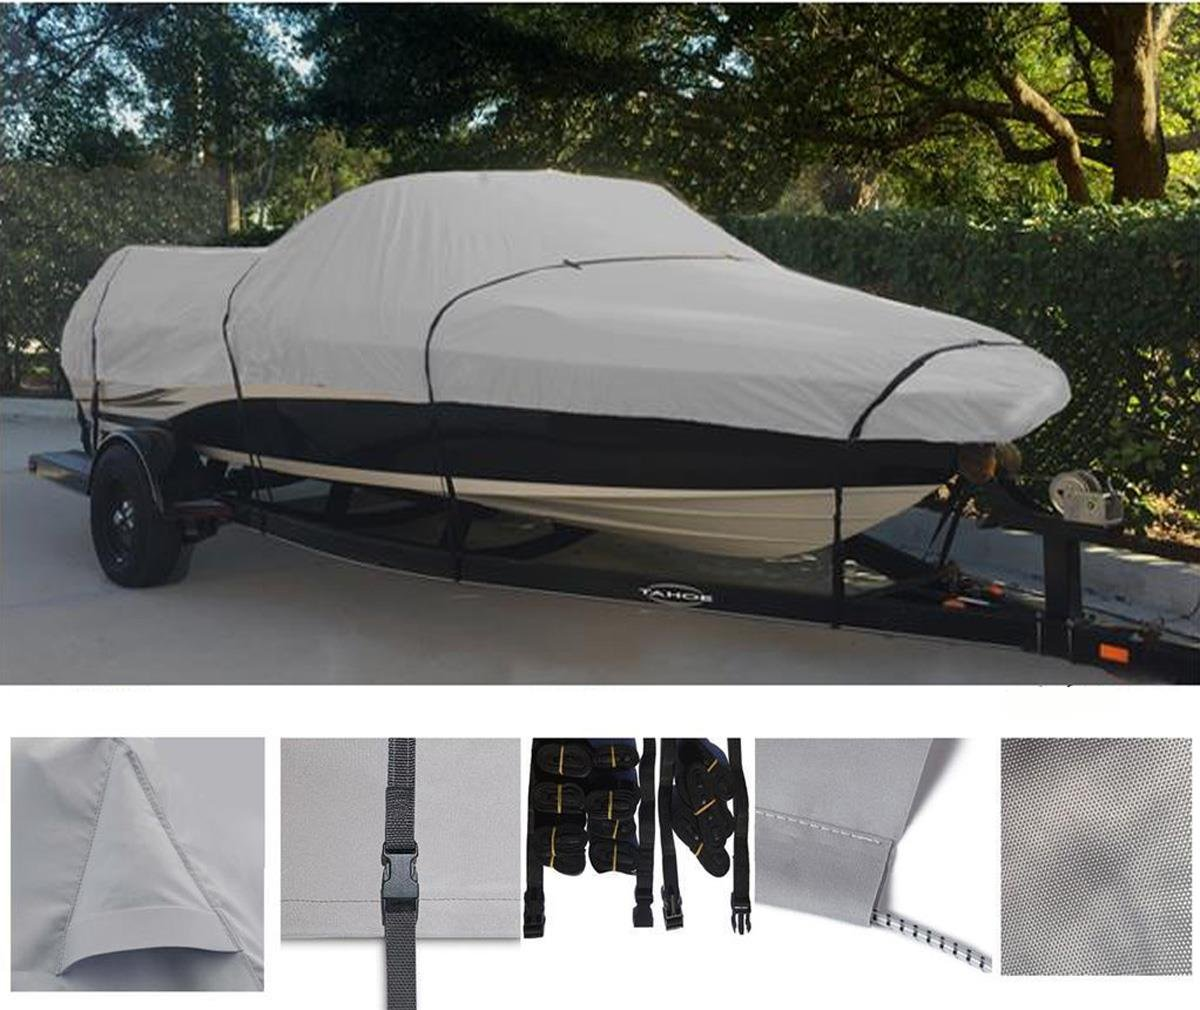 GREY, STORAGE, TRAVEL, MOORING BOAT COVER FOR WELLCRAFT ECLIPSE 2000 SC /SCS I/O 1998 by SBU